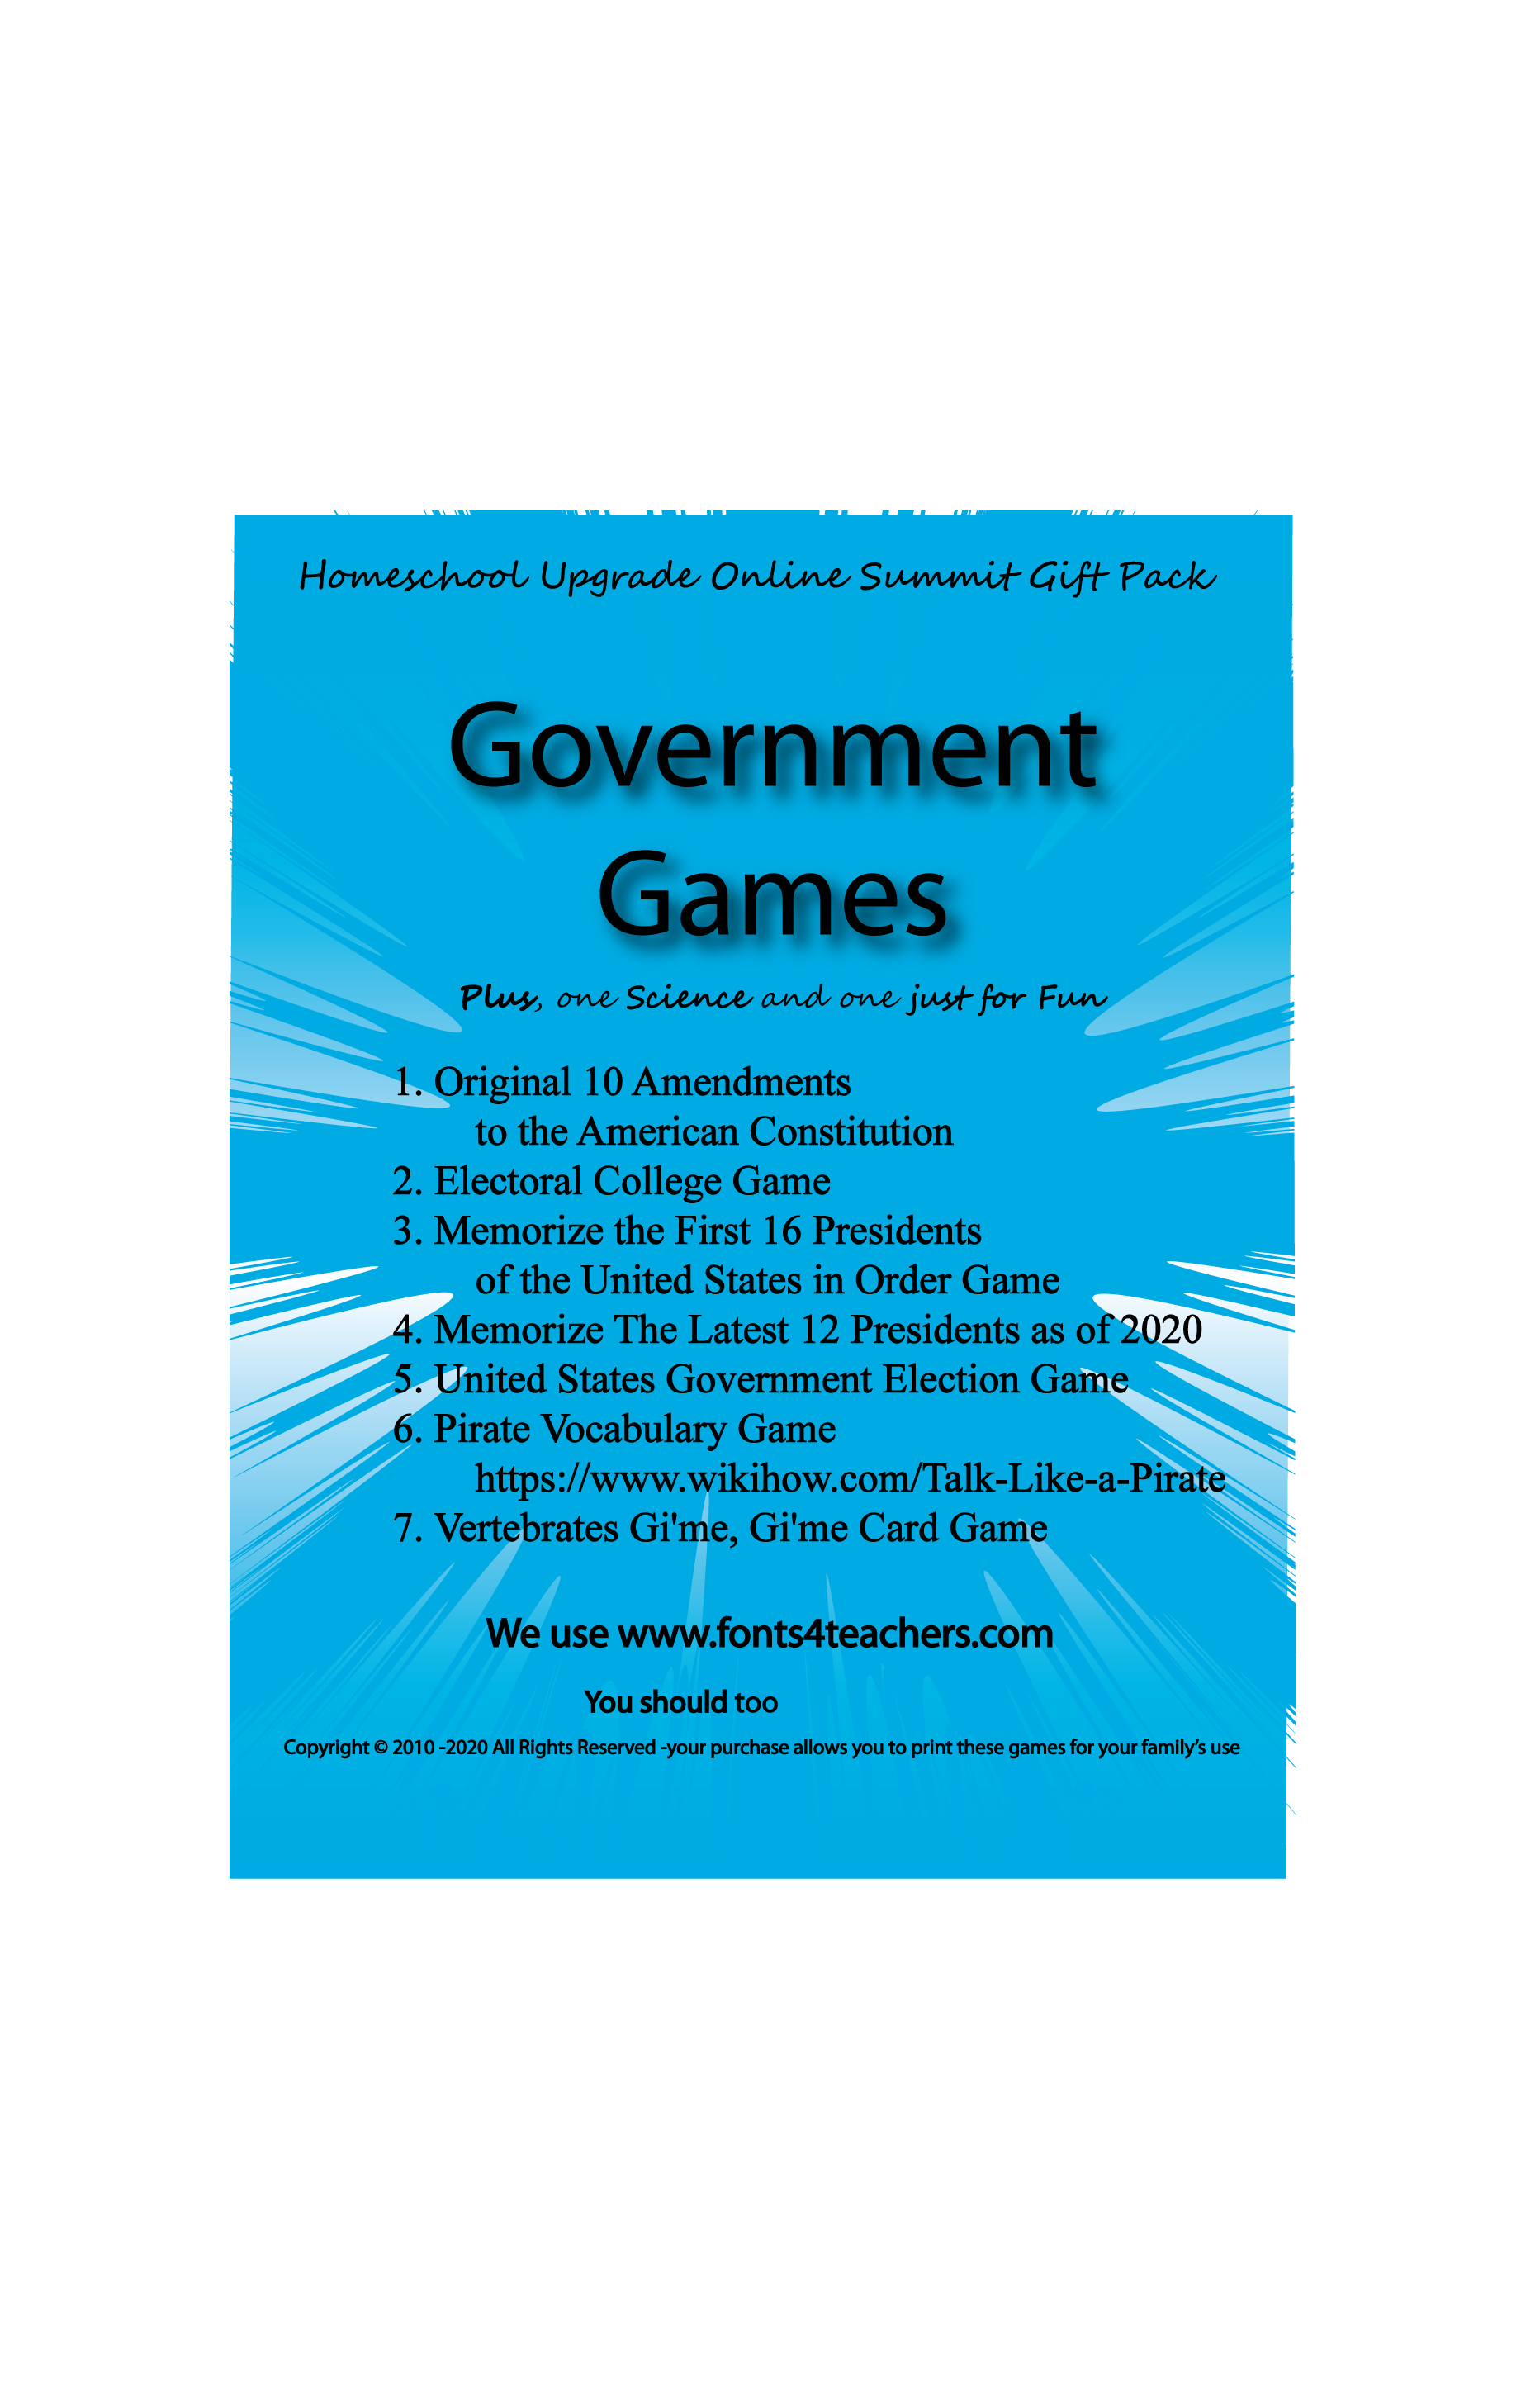 Government Games cover shows the games included in the Game pack.